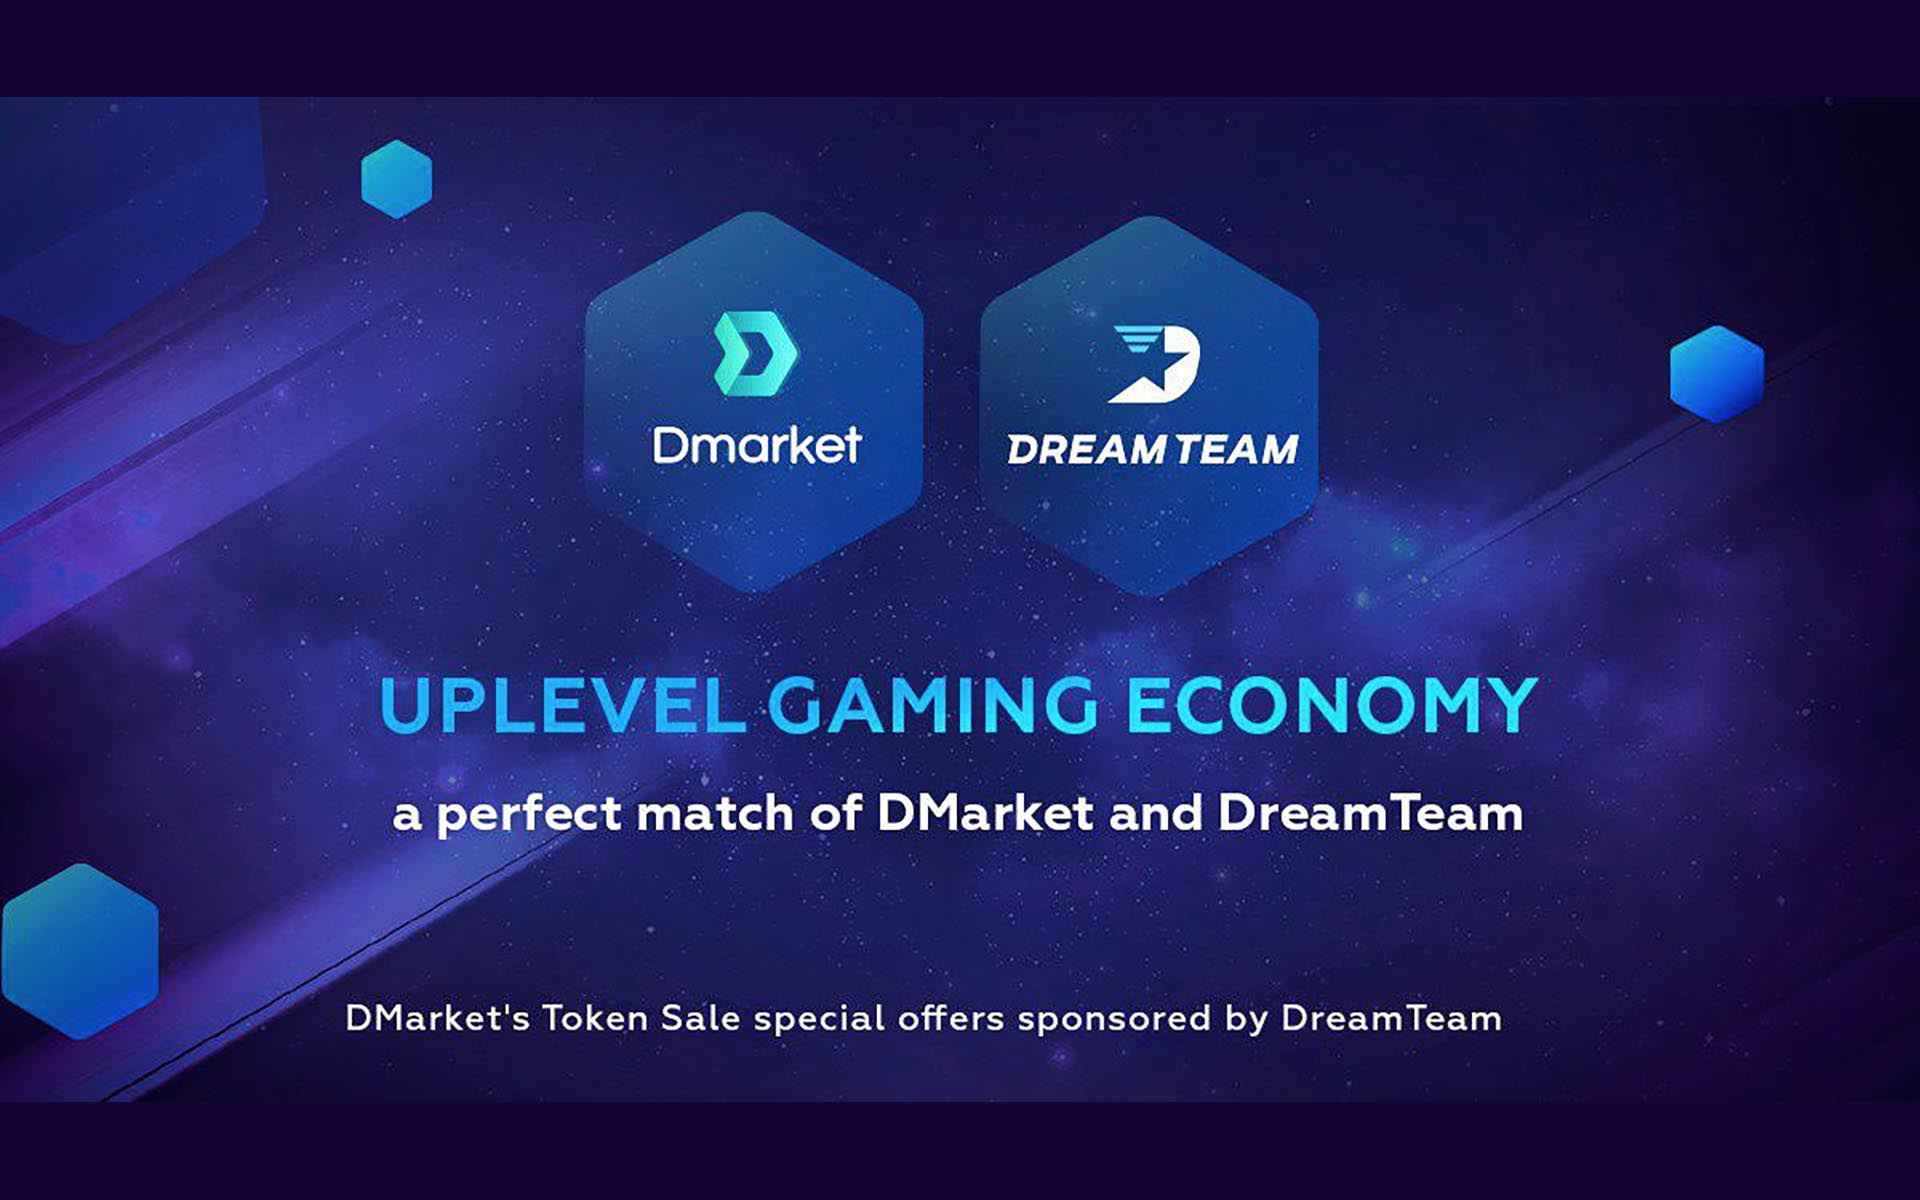 DMarket and DreamTeam Become Partners and Announce Special Offers for Token Sale